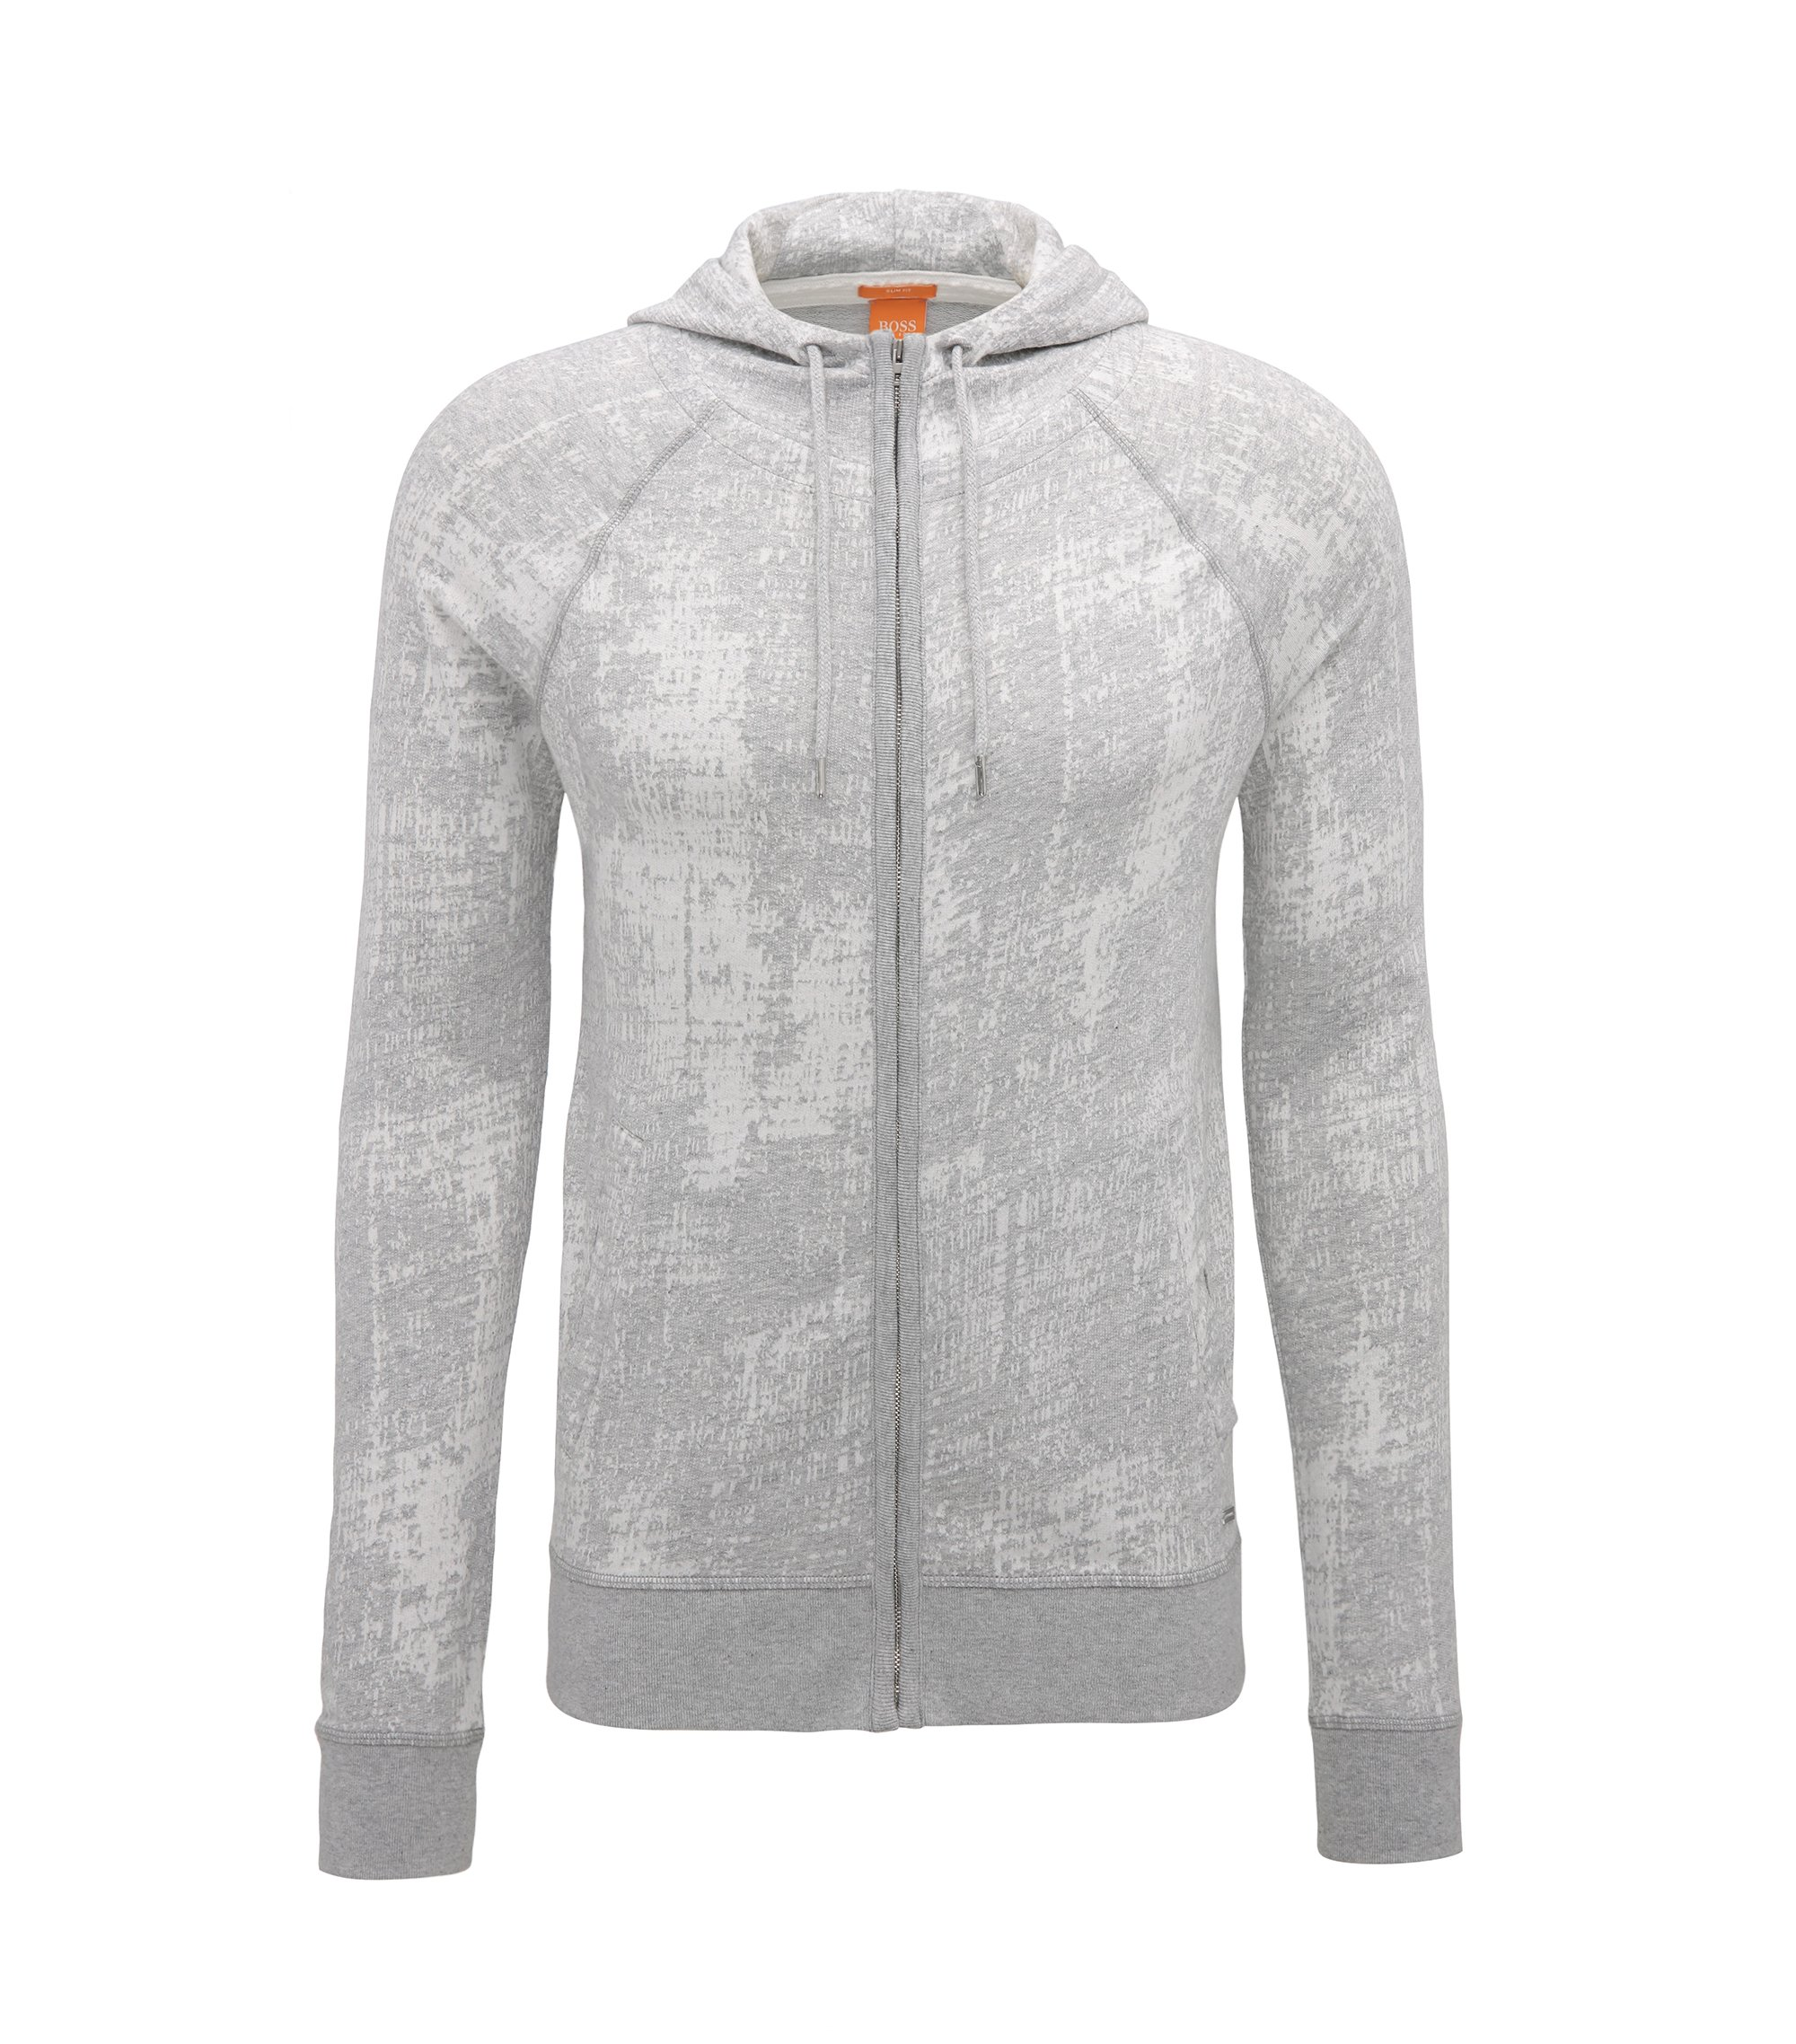 Sweat zippé Slim Fit en jacquard de coton, Gris chiné